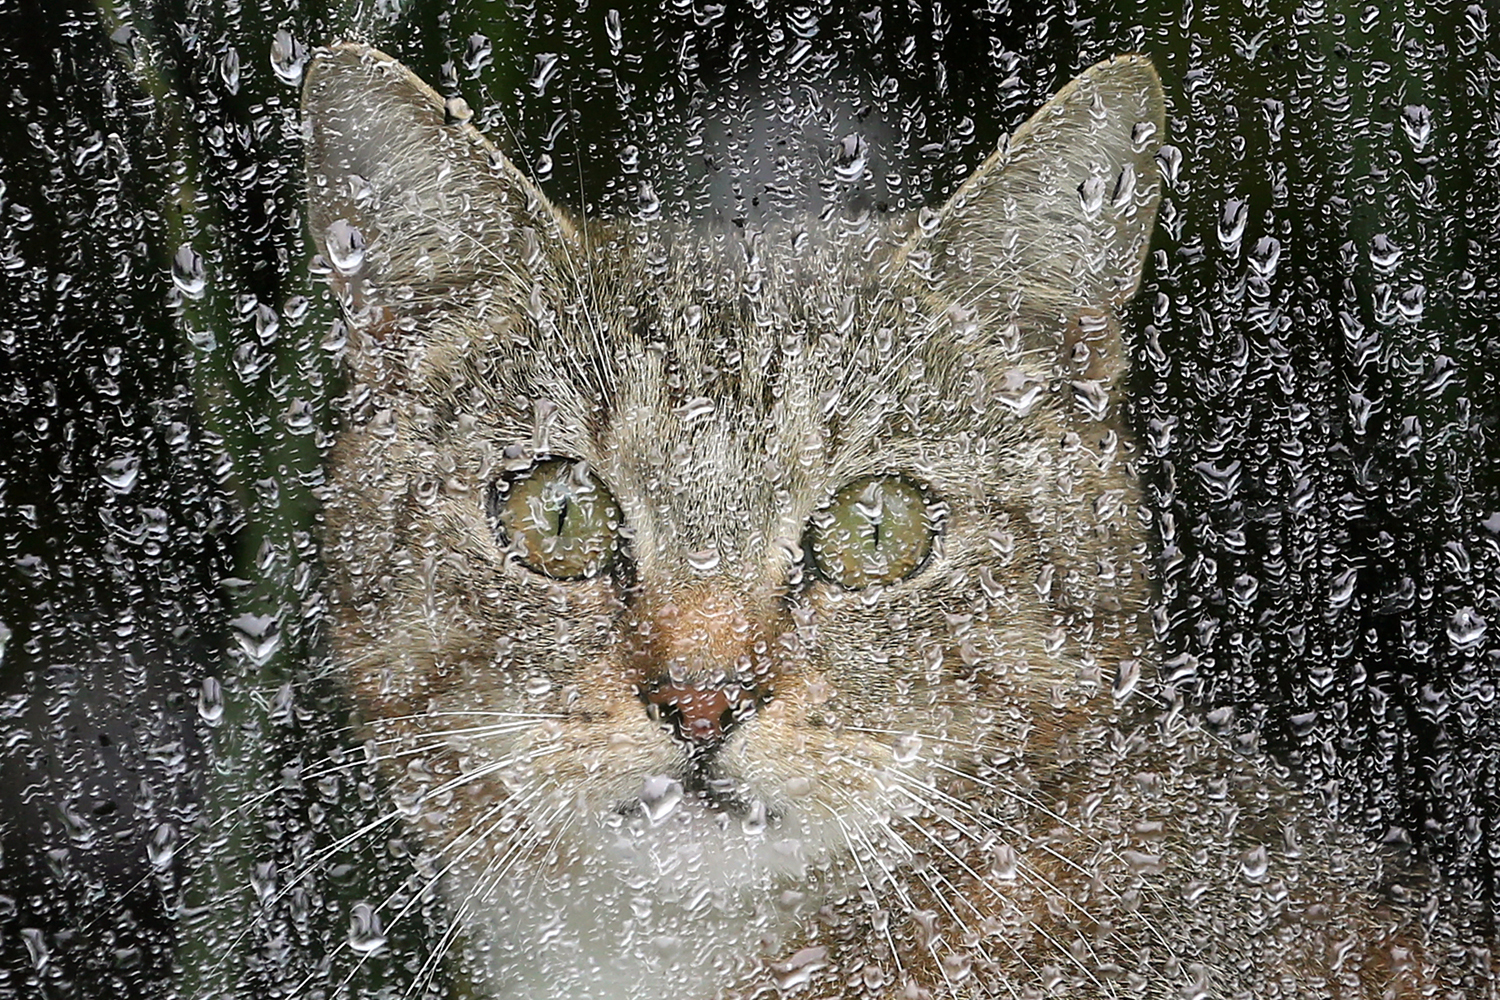 May 31, 2013. A cat sits behind a rainy window and looks out in Berlin, Germany.